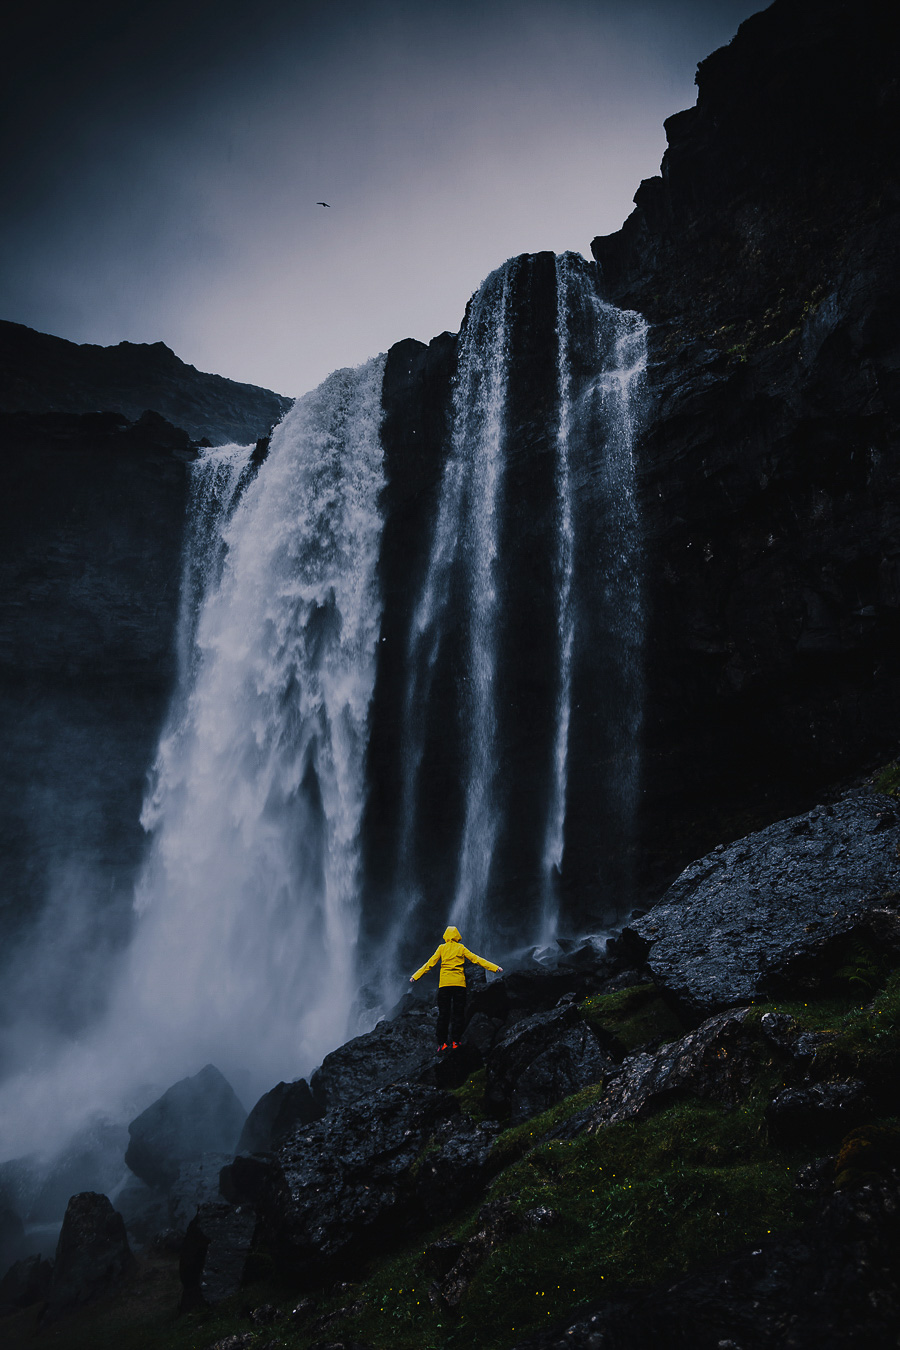 Yellow dressed person looking up at Fossa waterfall